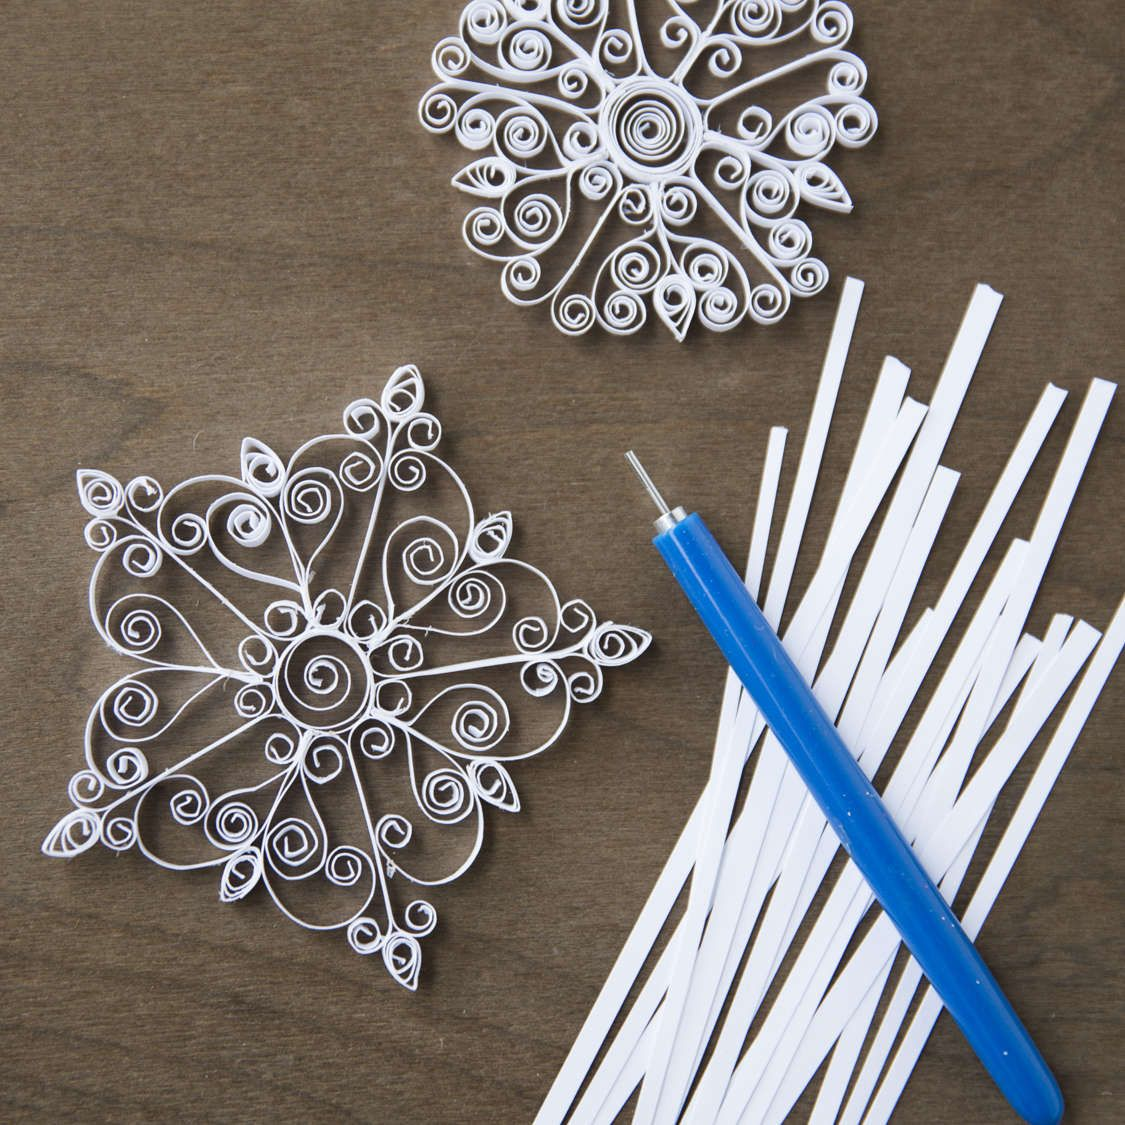 Snowflakes ornaments - Diy Mini Quilled Snowflake Kit 8 99 For The Tool Supplies Great Gift Idea